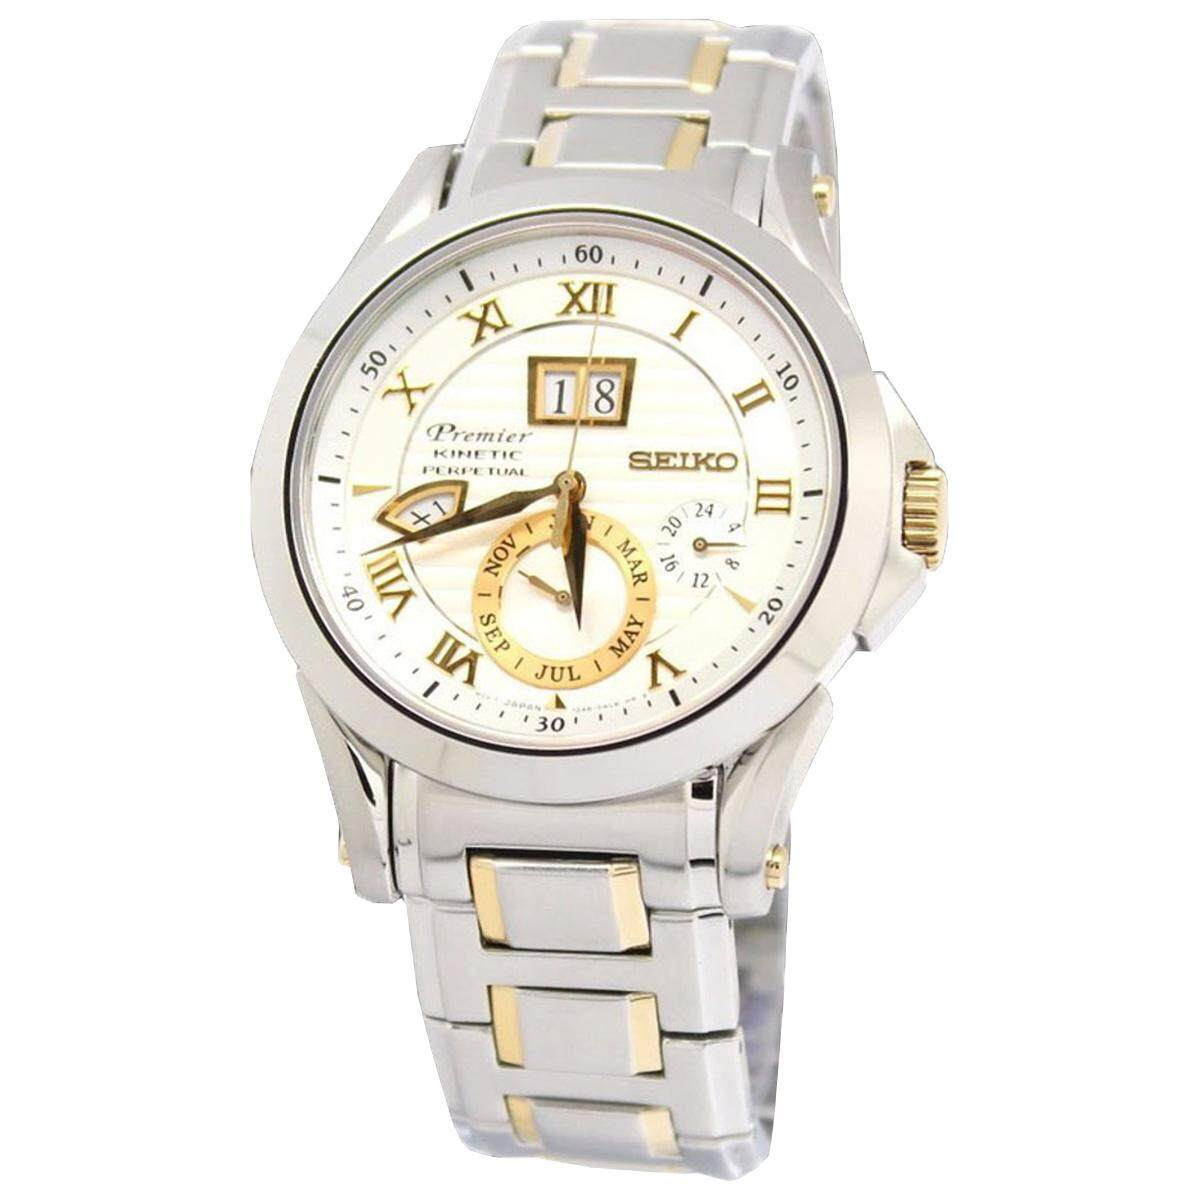 Sell Seiko Kinetic Ska683p1 Cheapest Best Quality Th Store Silver Dial Stainless Steel Bracelet Thb 14680 Premier Perpetual